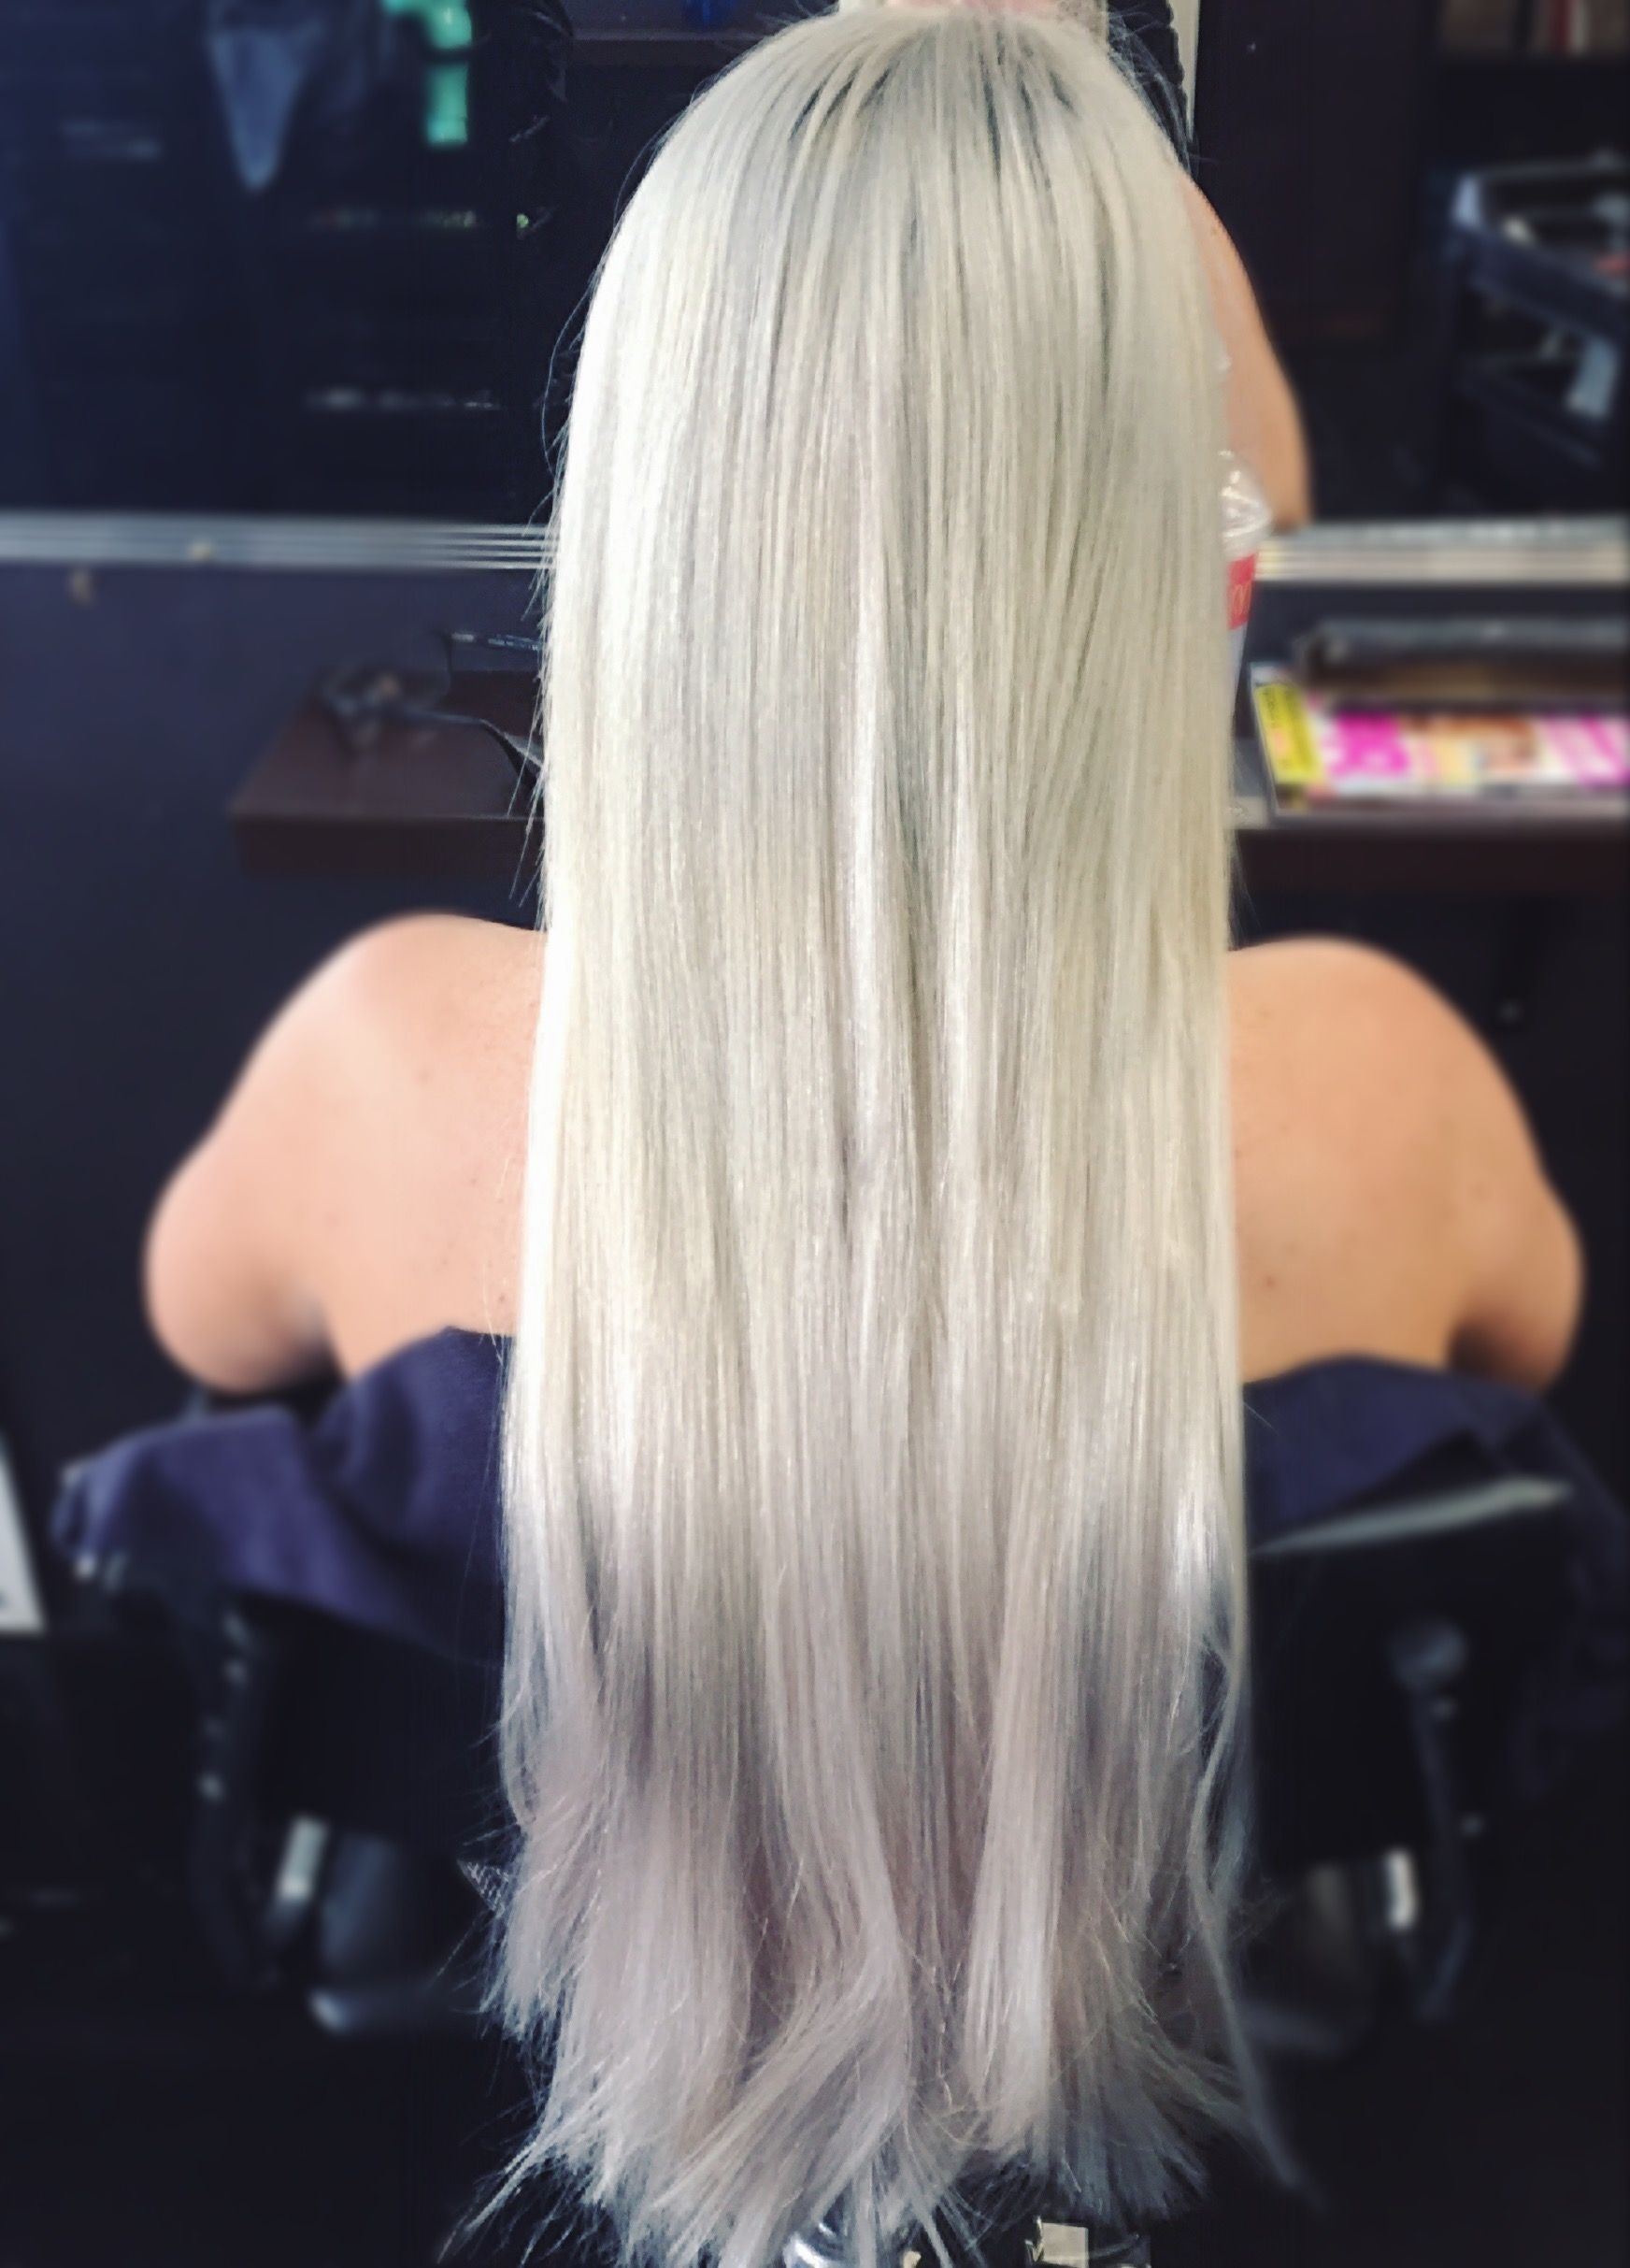 26 Inch Zala Hair Extensions Hairstyle Fashion In 2018 Pinterest